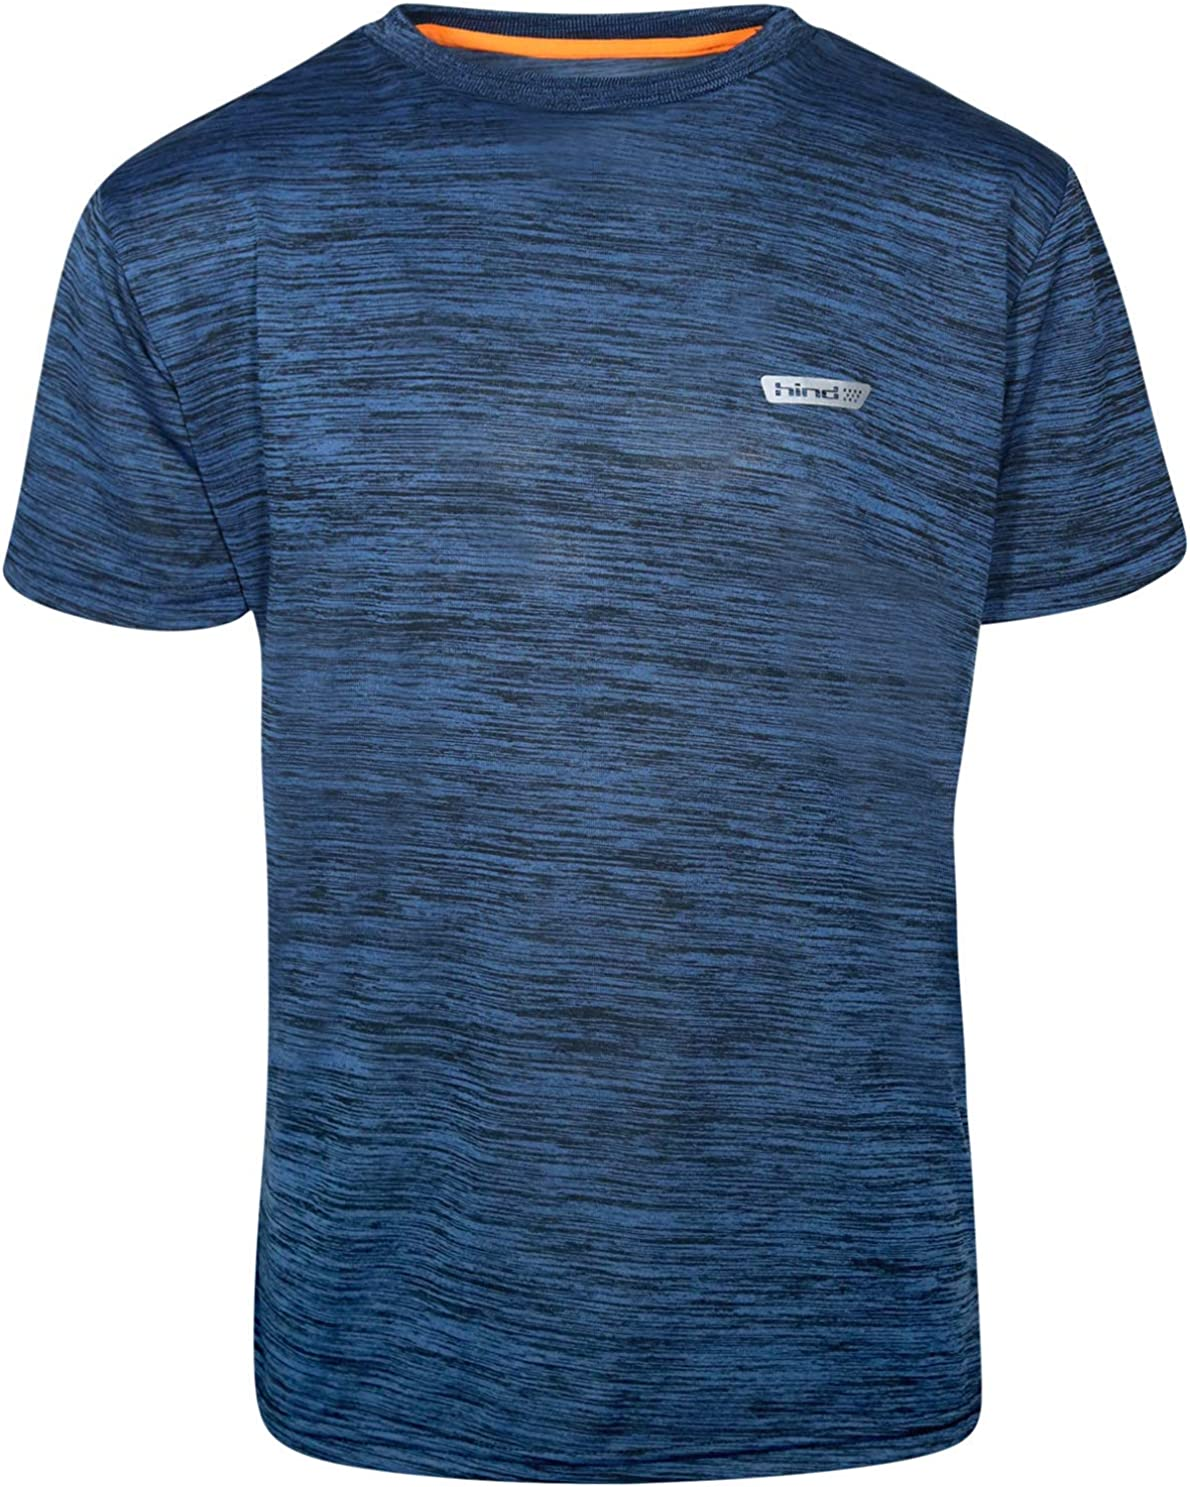 Hind Boys Performance Quick Dry Athletic Sports T-Shirt 4-Pack